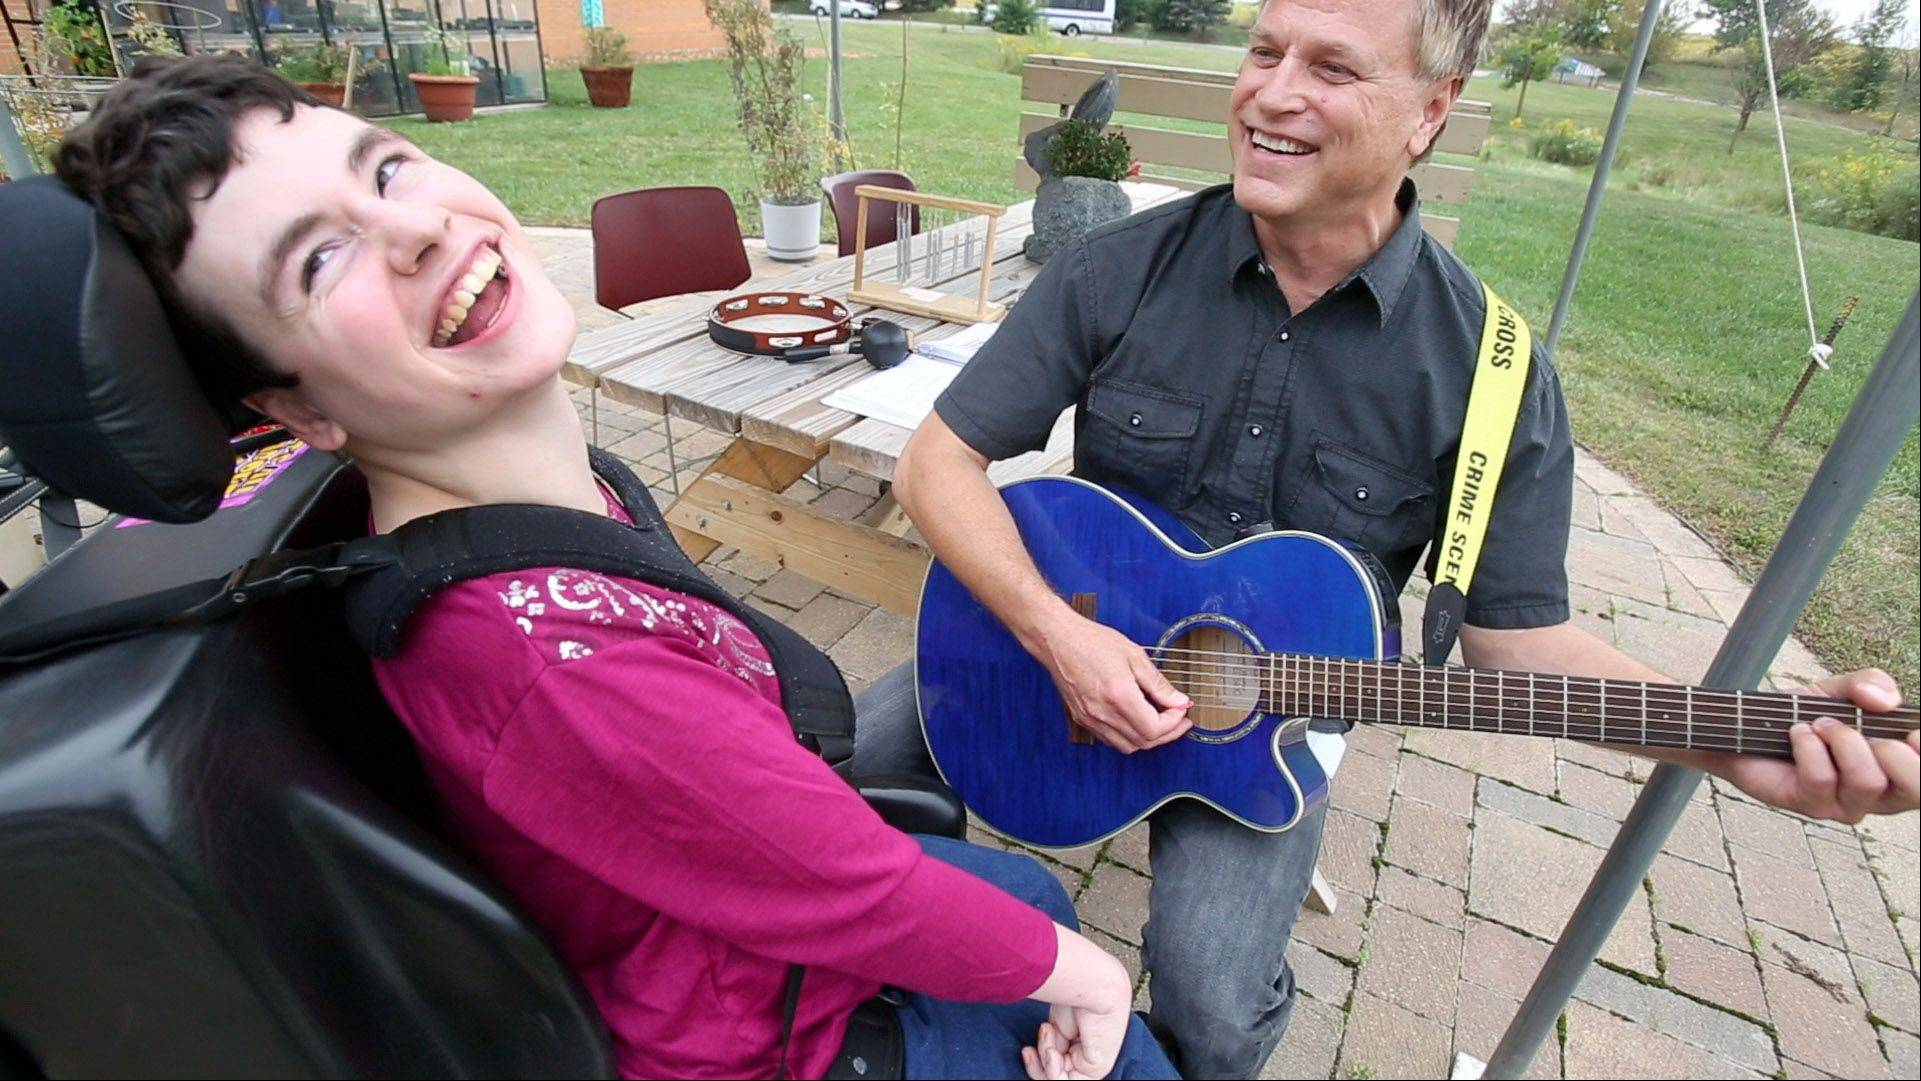 Marklund client Ashley, who has severe developmental disabilities, sings along with Bartlett resident and recreation therapist Wesley Kochan, as he plays his guitar at the center in Geneva.